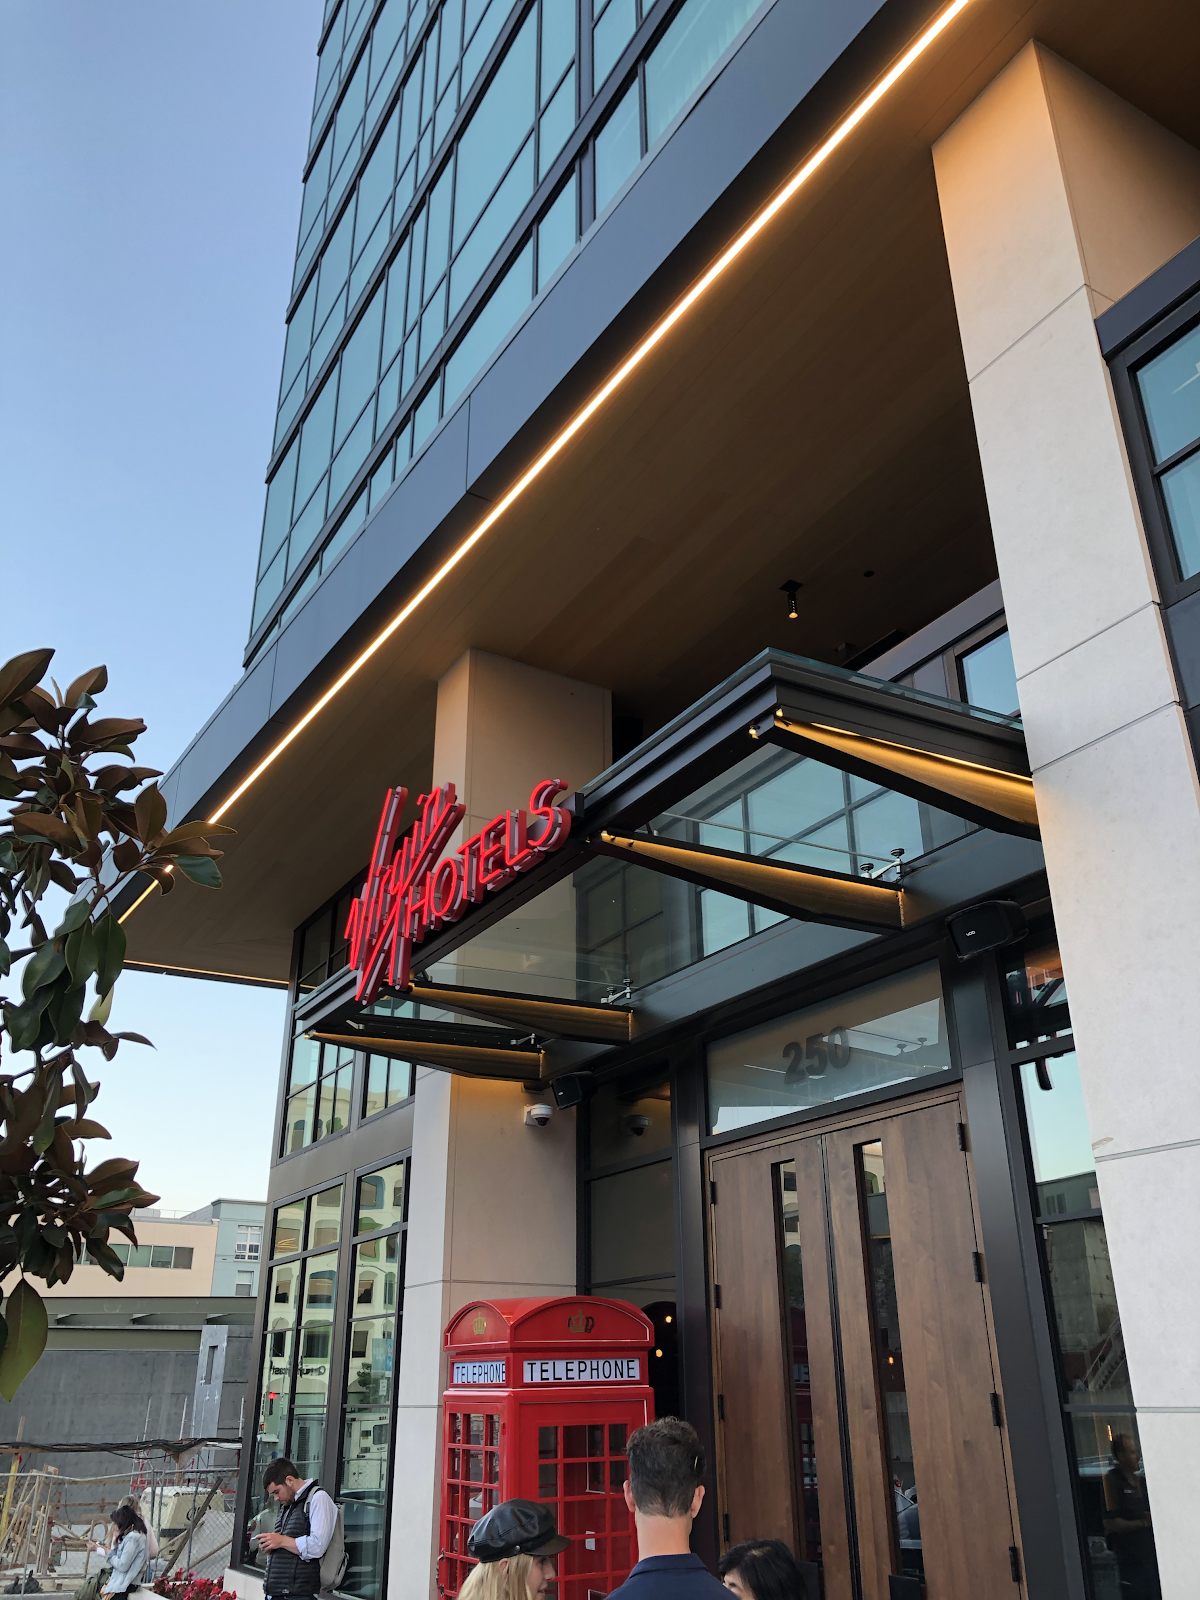 Virgin hotel Entrance, San Francisco